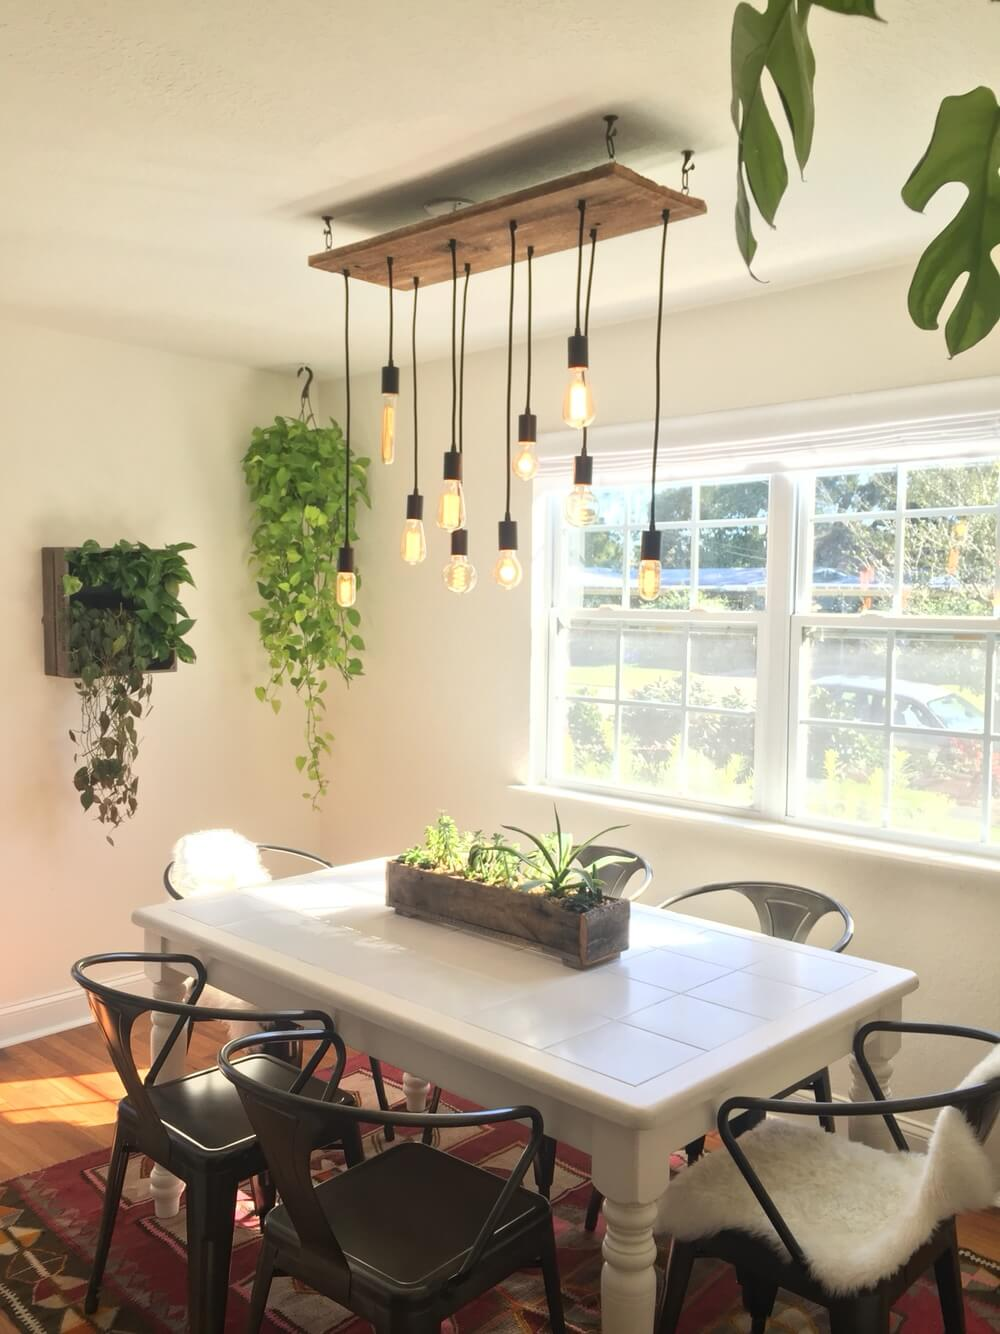 Reclaimed Wood Chandelier with plants